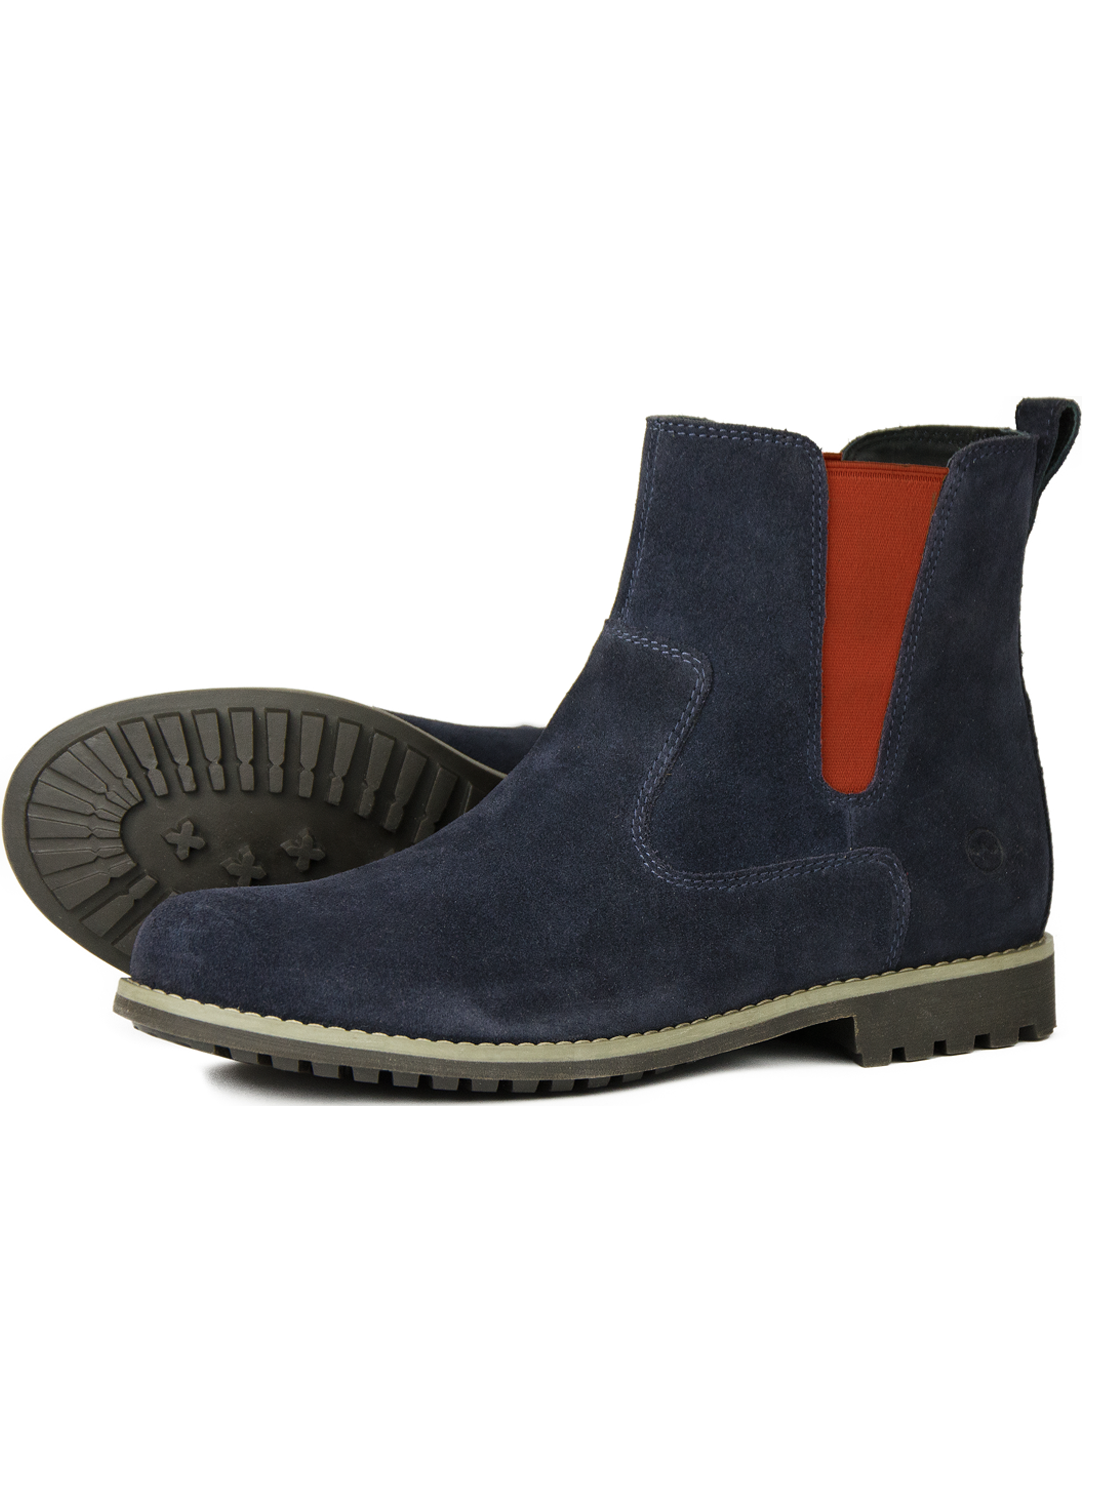 dada3f6c204 Orca Bay Cotswold Navy Red Suede Boots